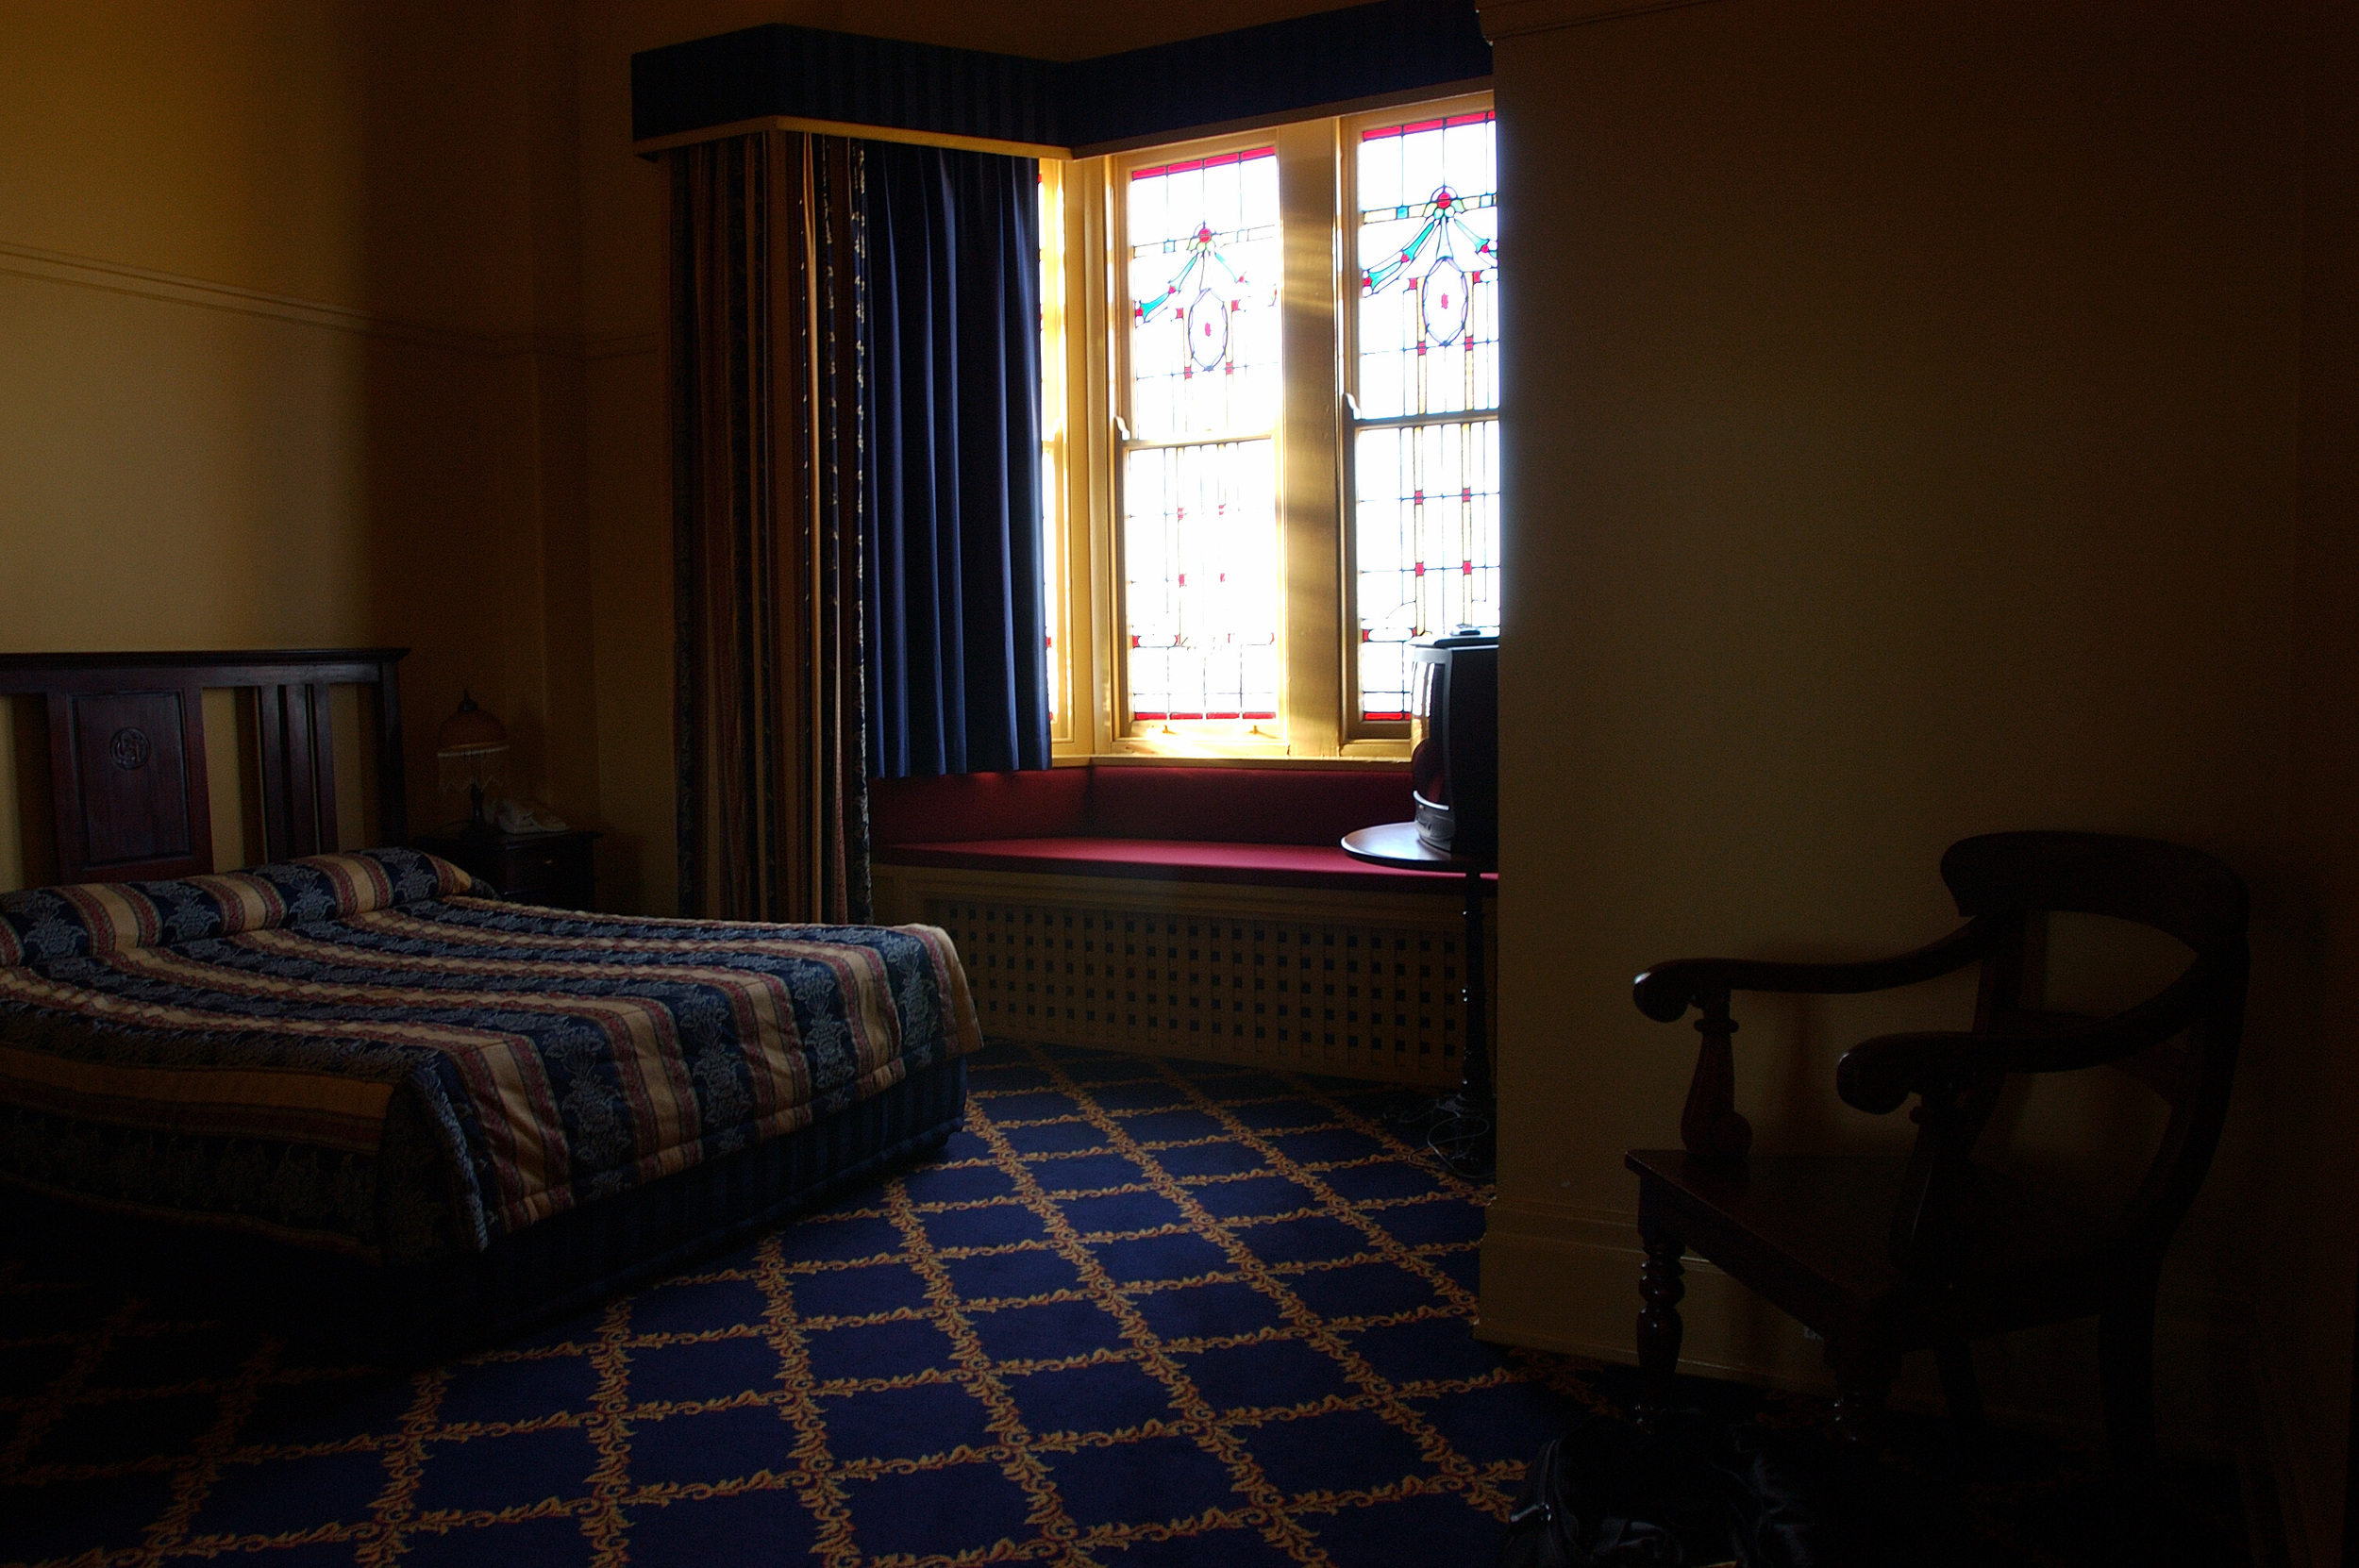 Our room at the Carrington, with stain glass windows.